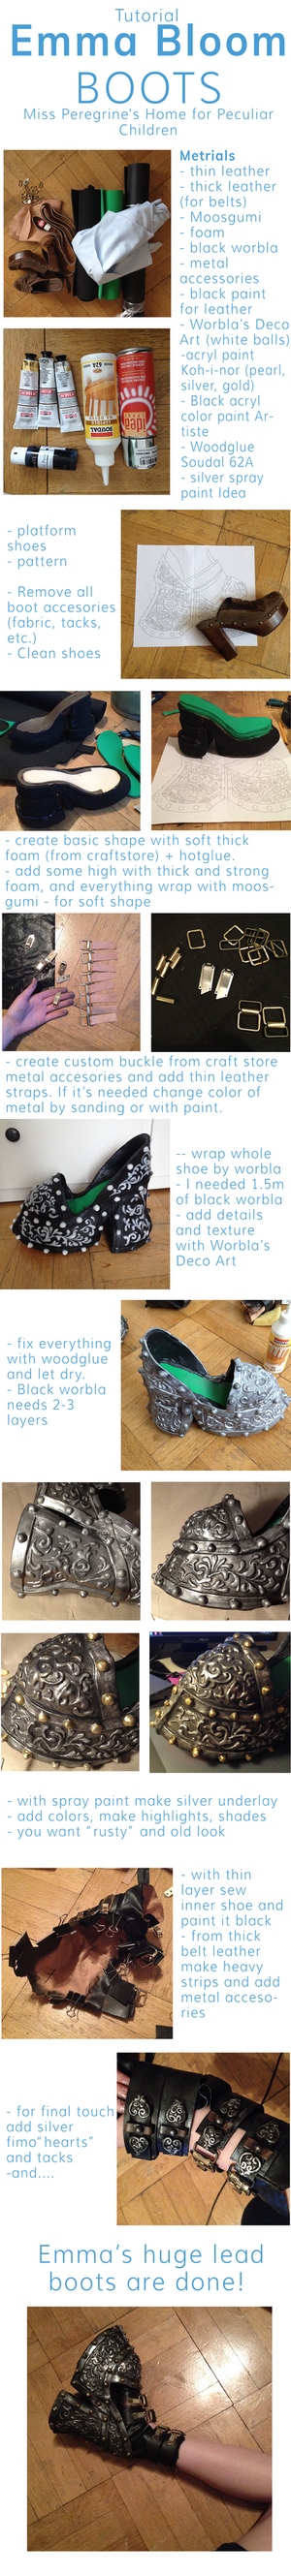 Tutorial - Emma Bloom cosplay boots by Dragowlin